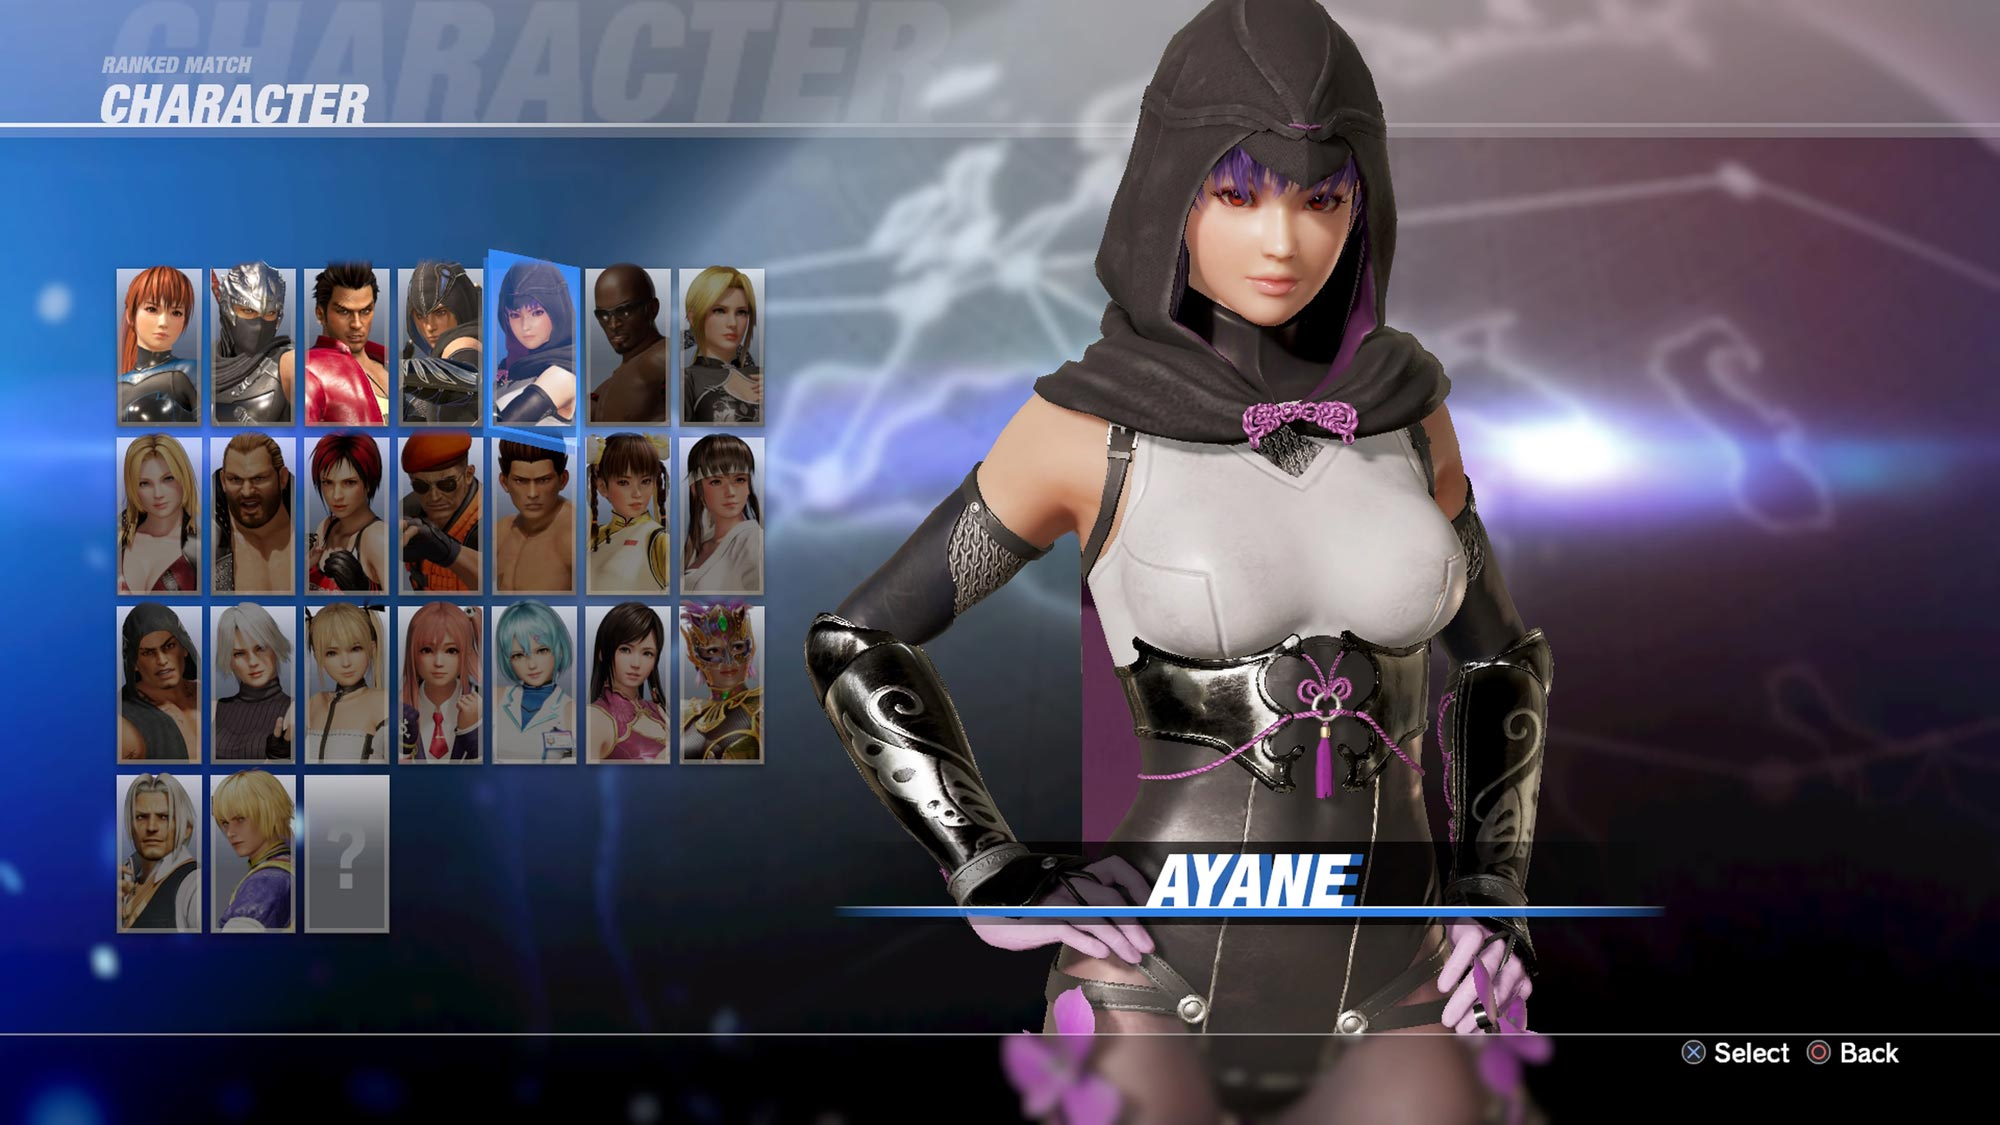 Dead or Alive 6 online beta screenshots 5 out of 6 image gallery